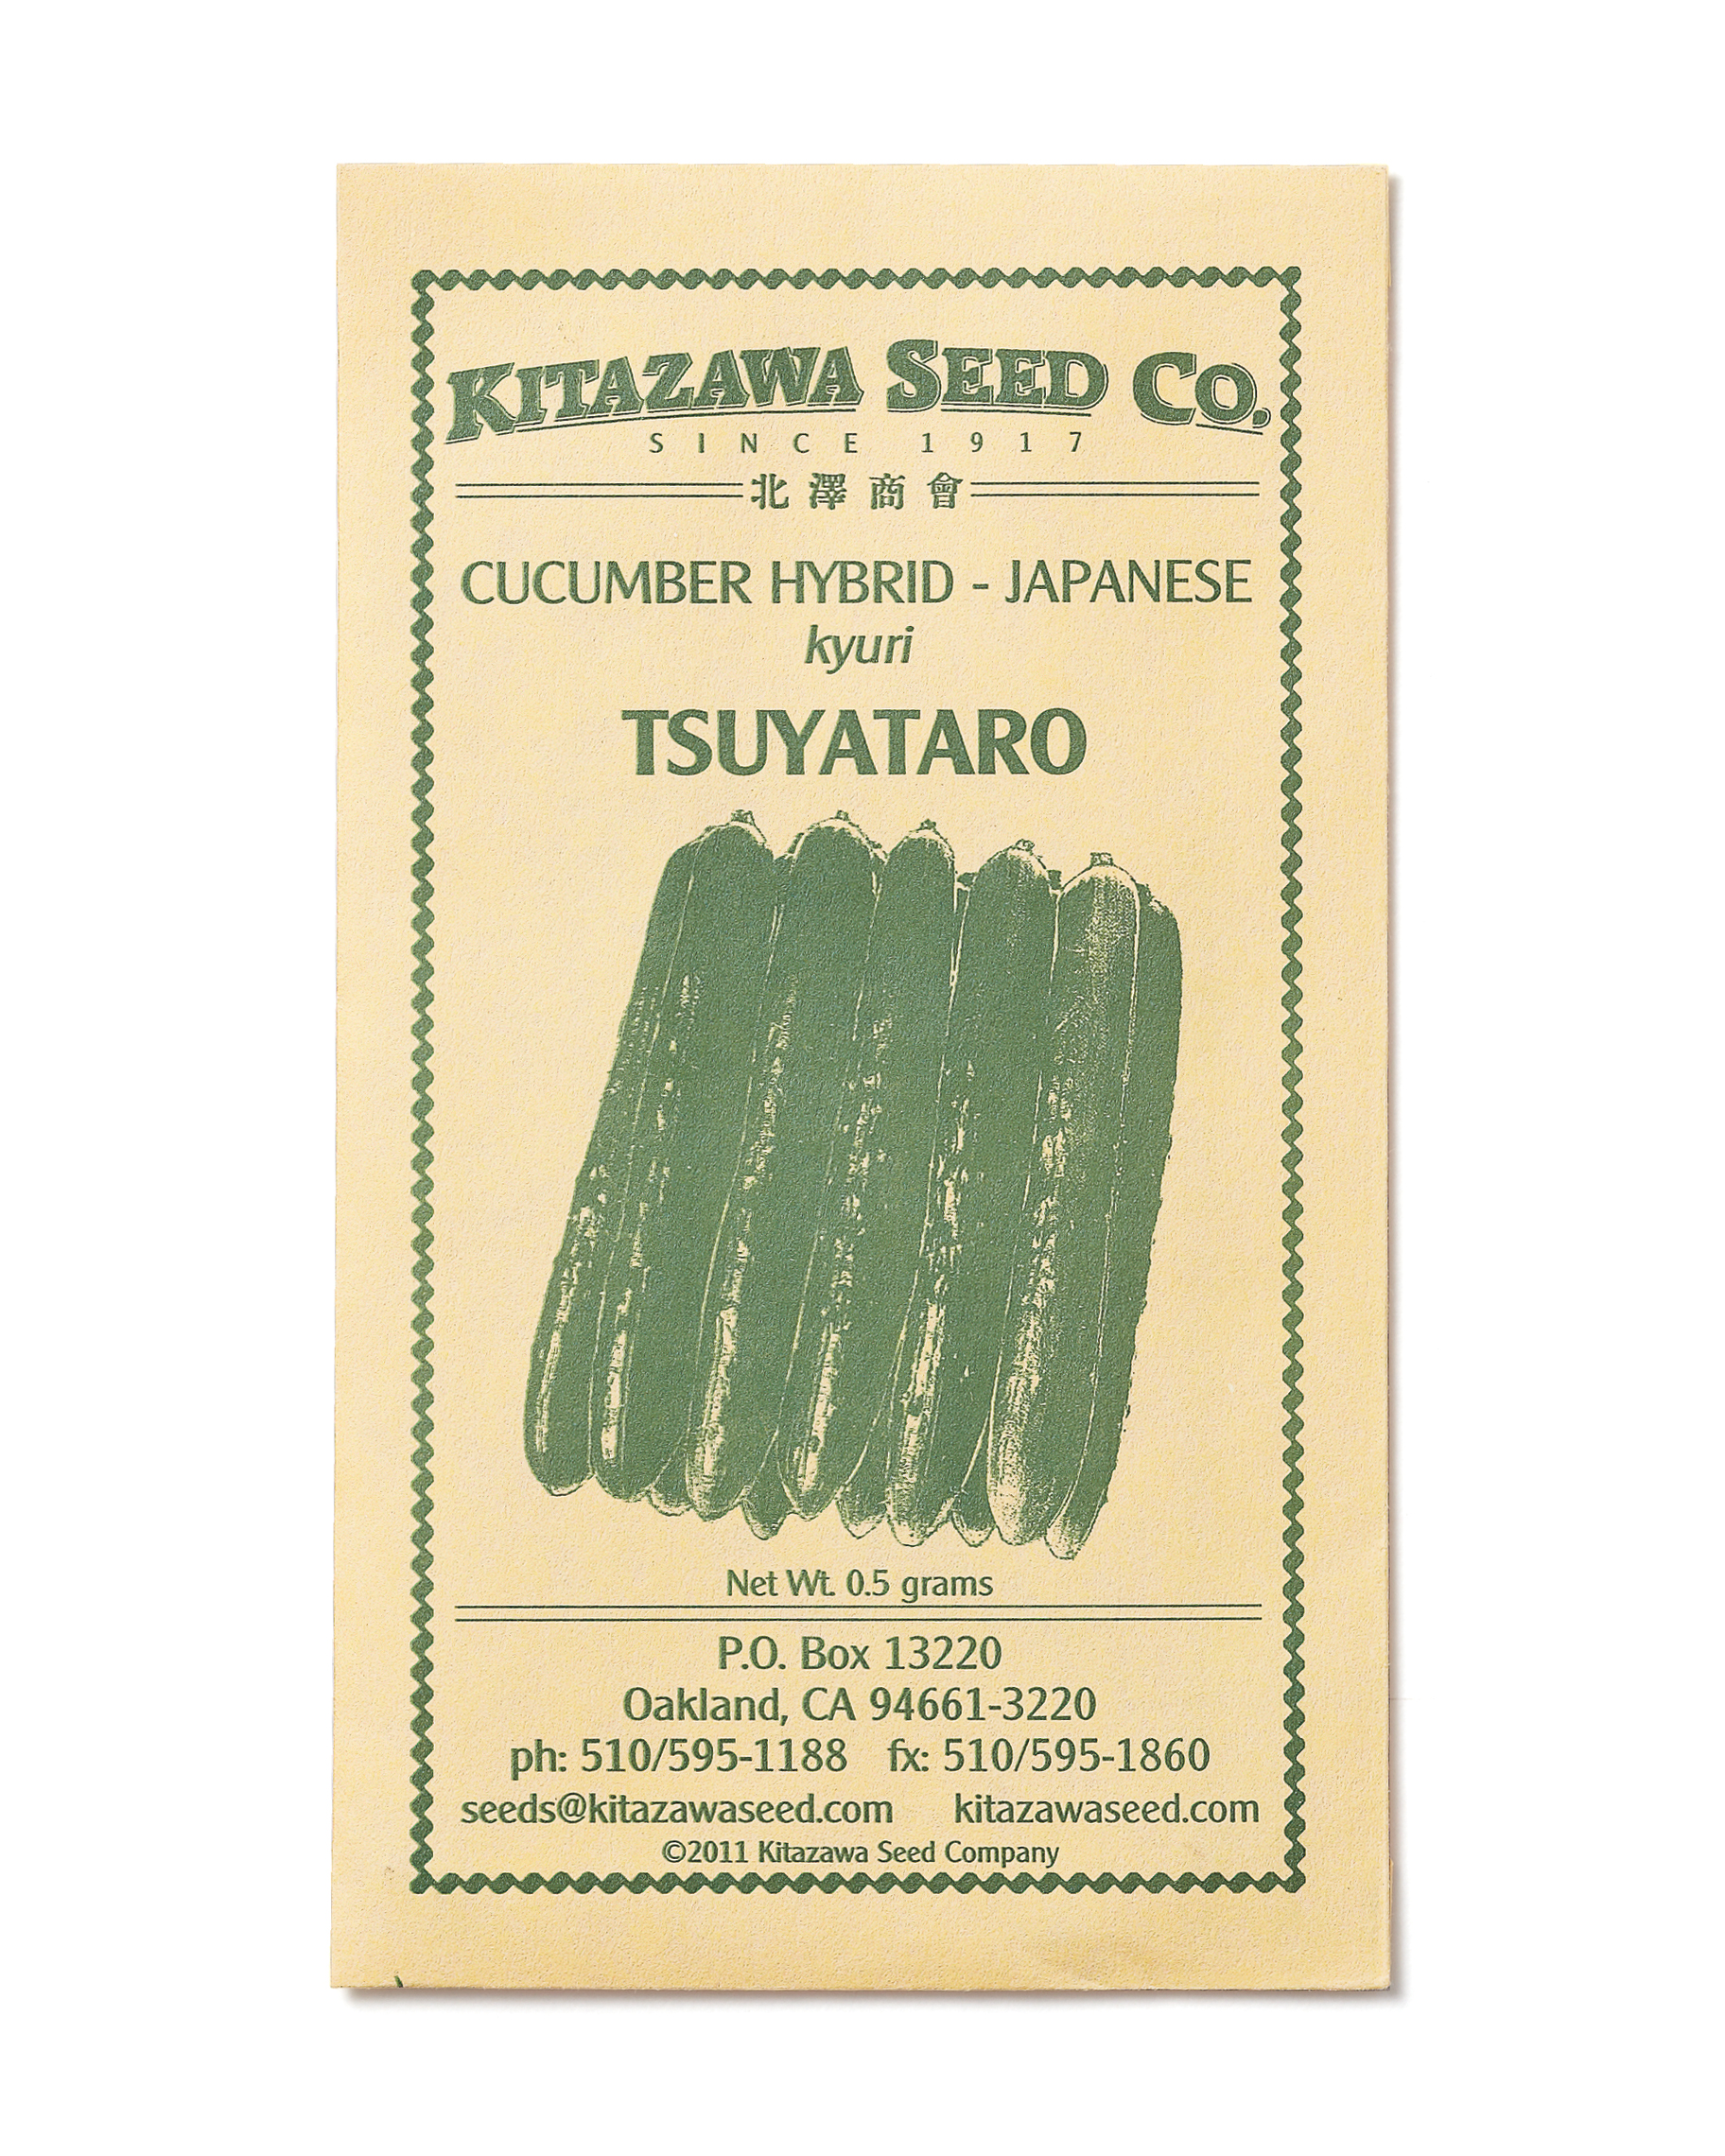 For Edibles: Kitazawa Seed Company